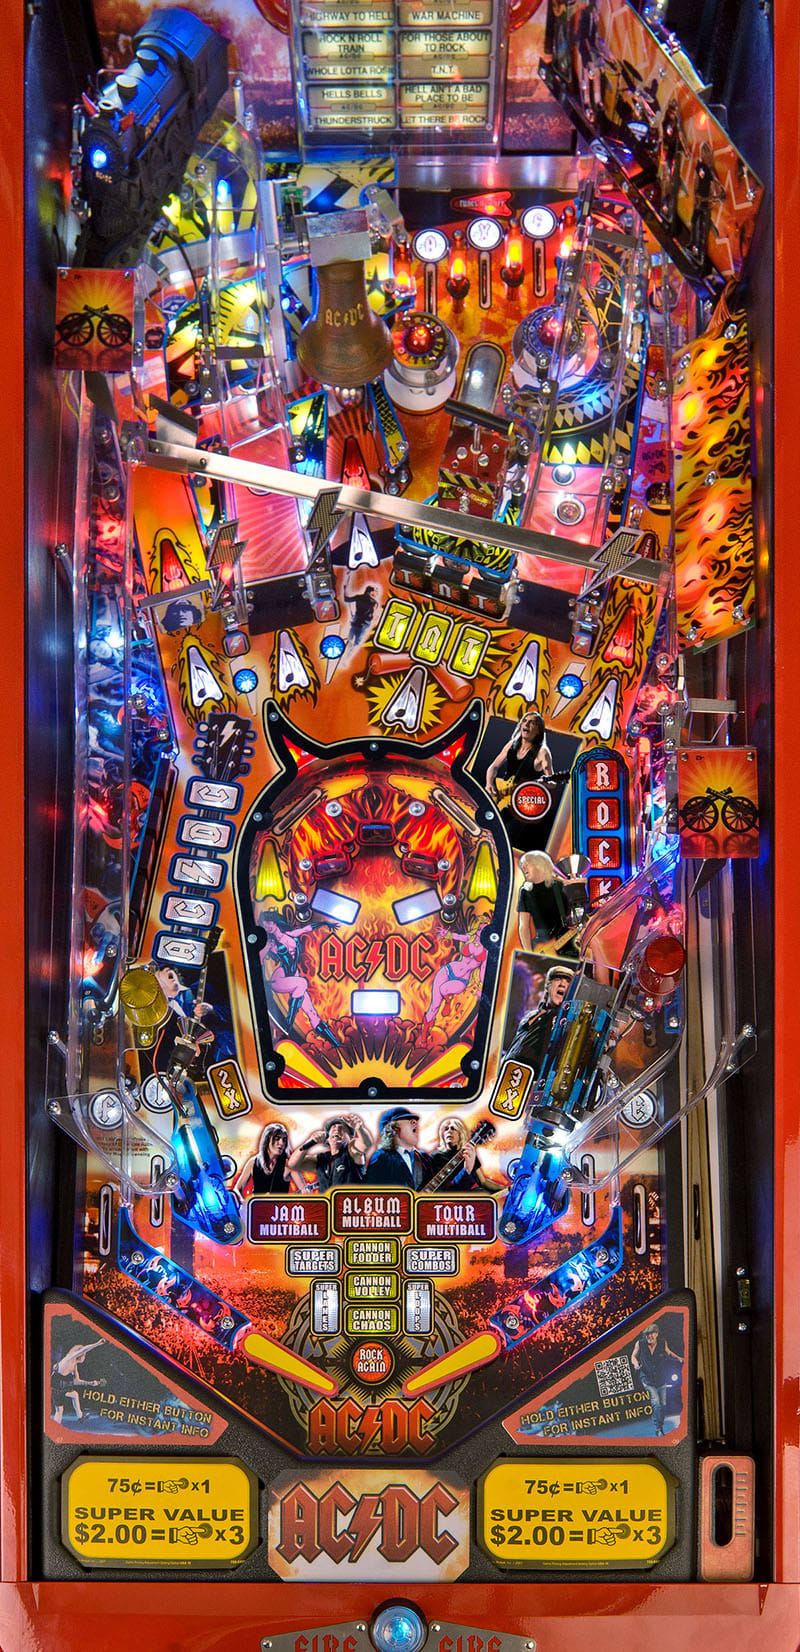 ACDC-luci-pinball-machine-stern-playfield-plan.jpg